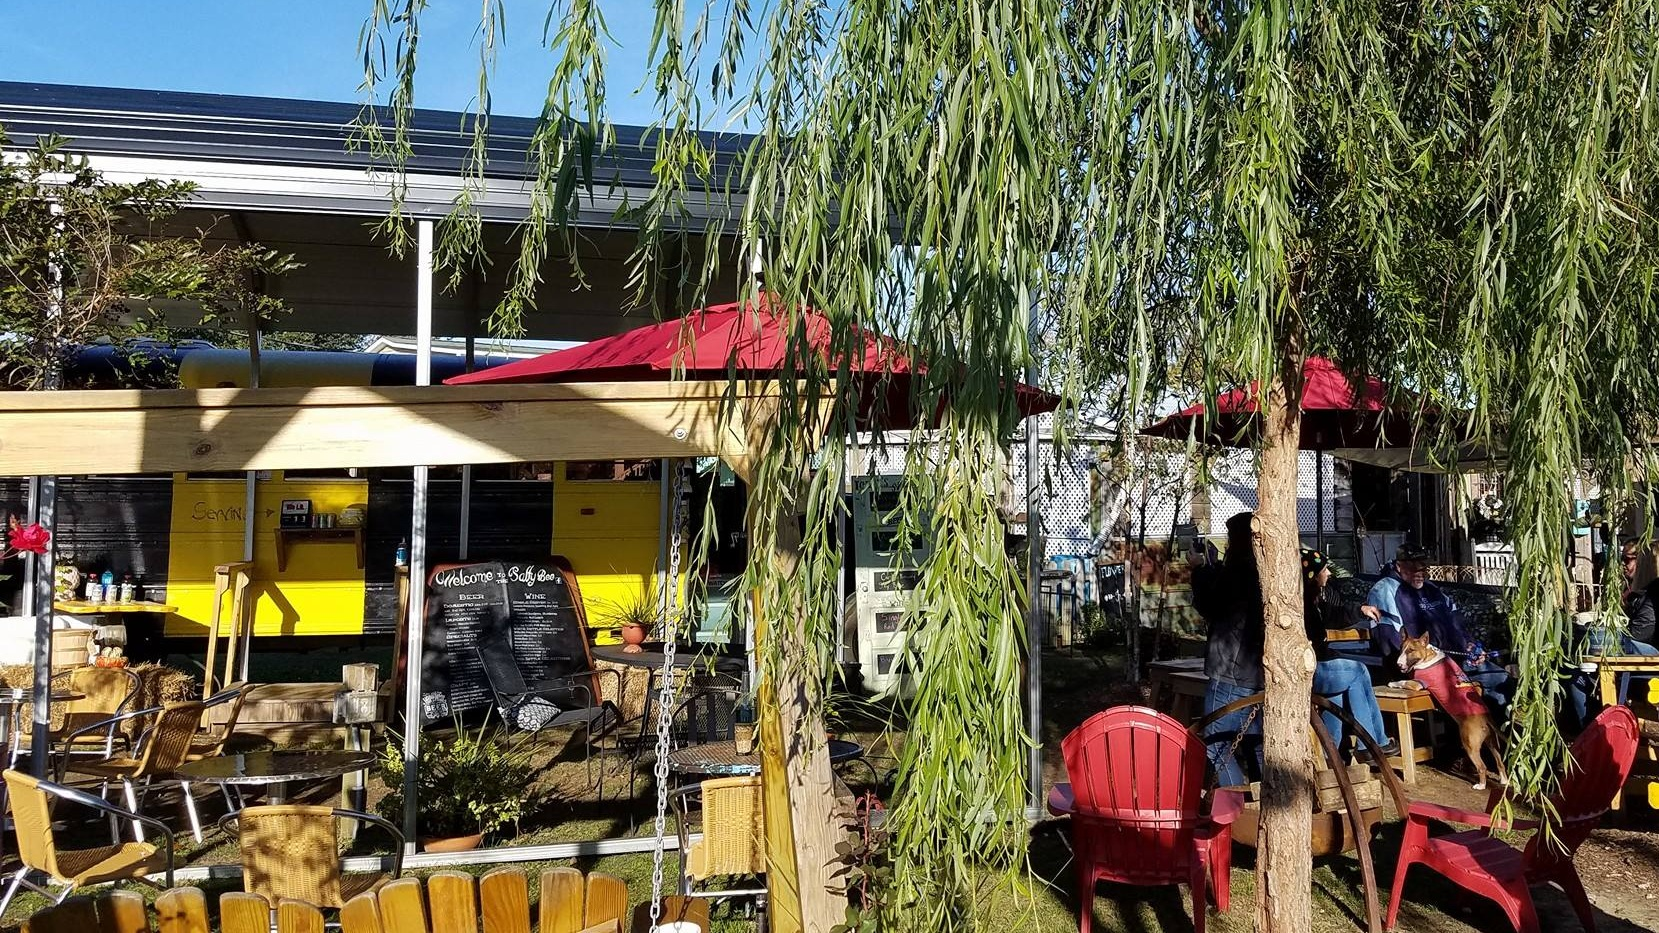 Saturday & Sunday - the Salty Bee is a welcome respite from the heat of the coastal summer sun. You'll find board games, yard games, cool shade and comfy seating as you sip a glass of chilled wine, an ice cold beer, soda & teas.